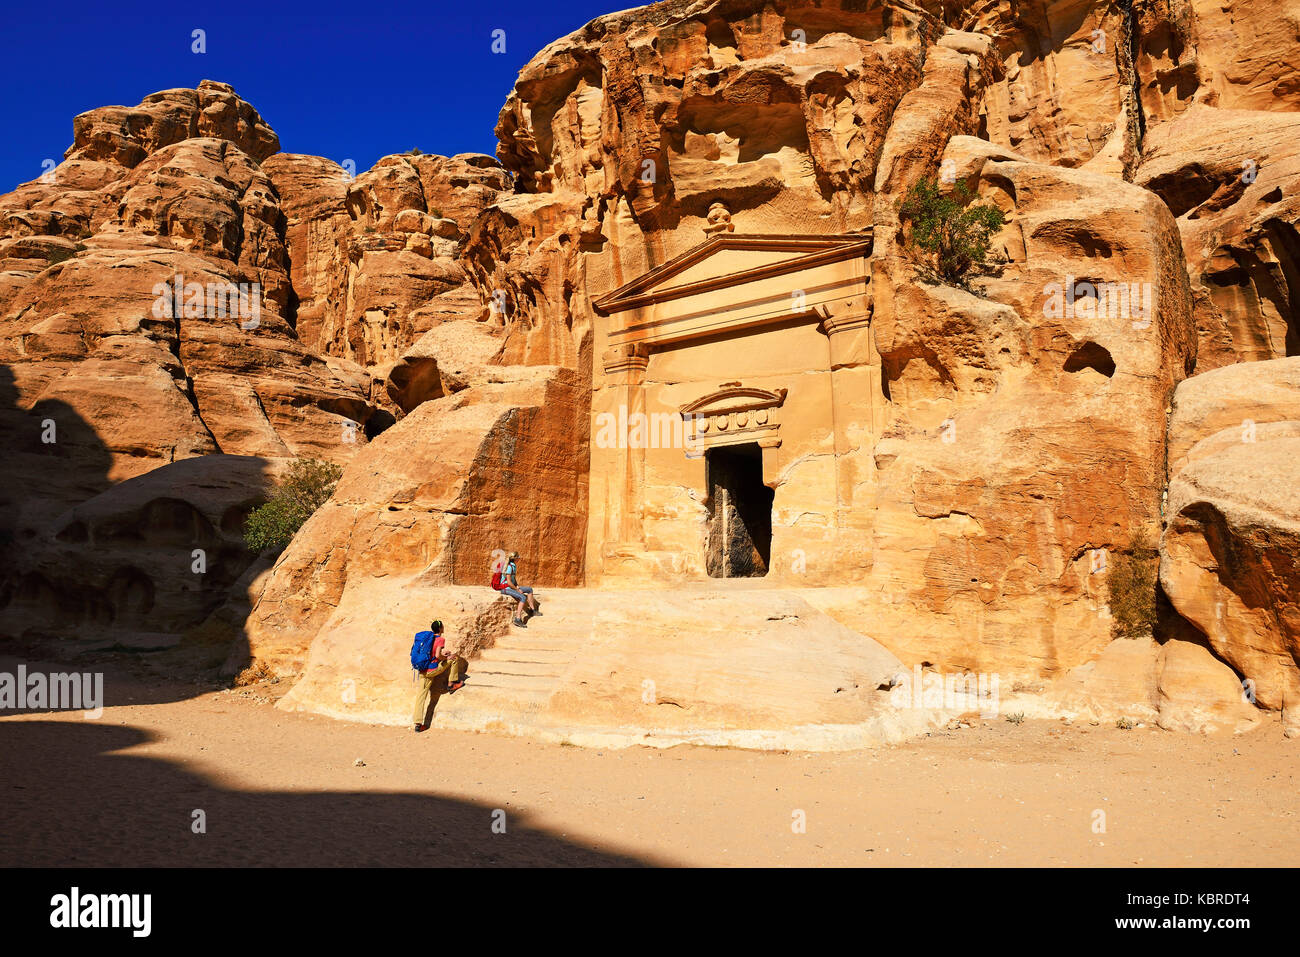 Hikers at rock-church in Little Petra, Jordan - Stock Image